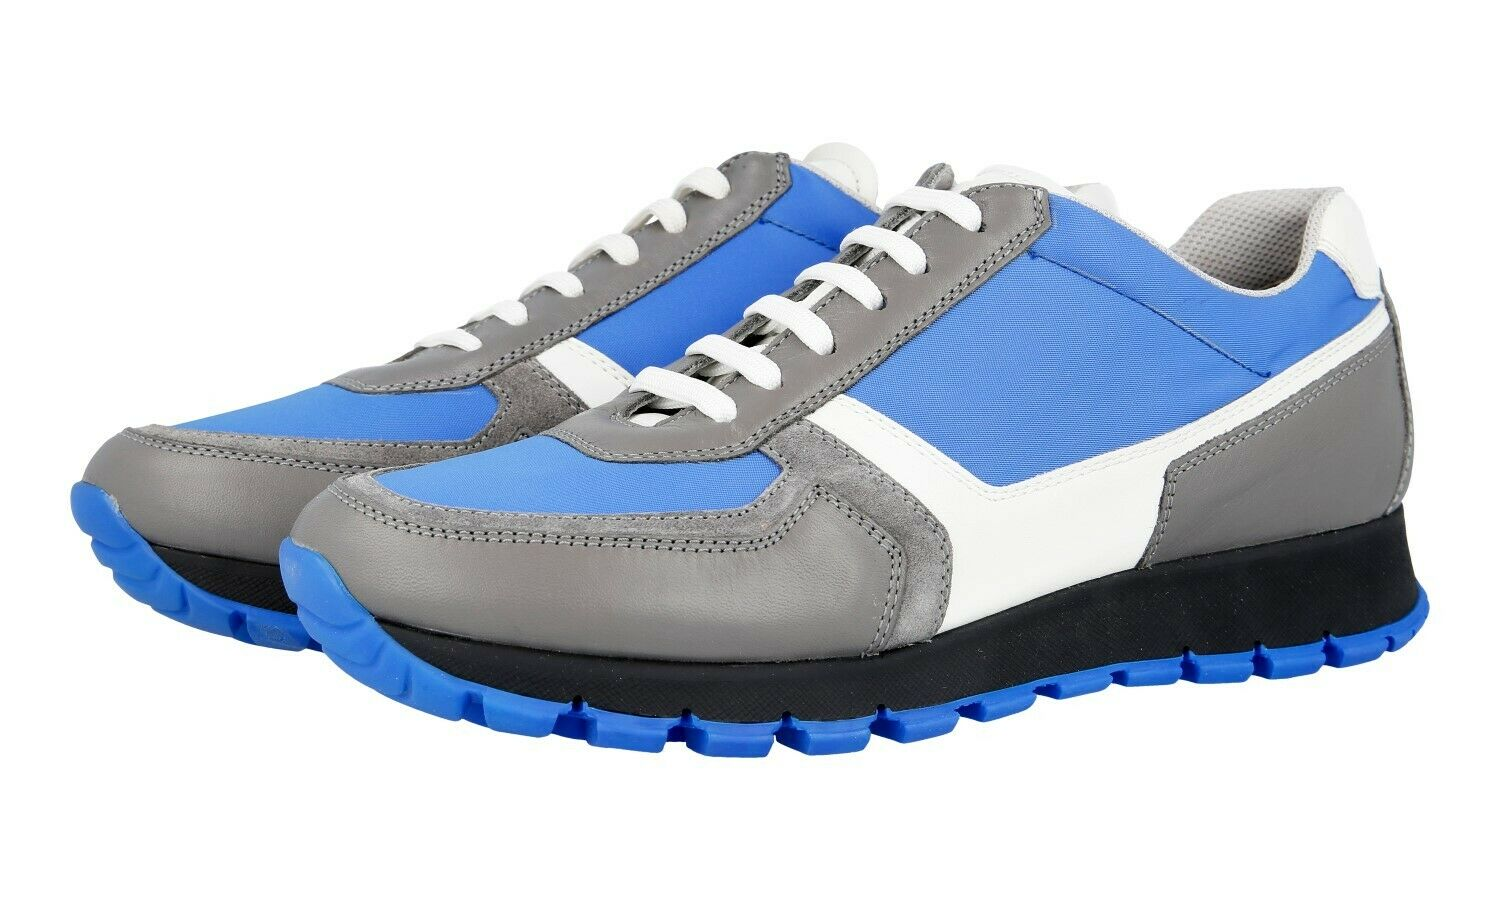 AUTH PRADA SNEAKERS SHOES 3E6026 GREY blueE LEATHER + NYLON US 8